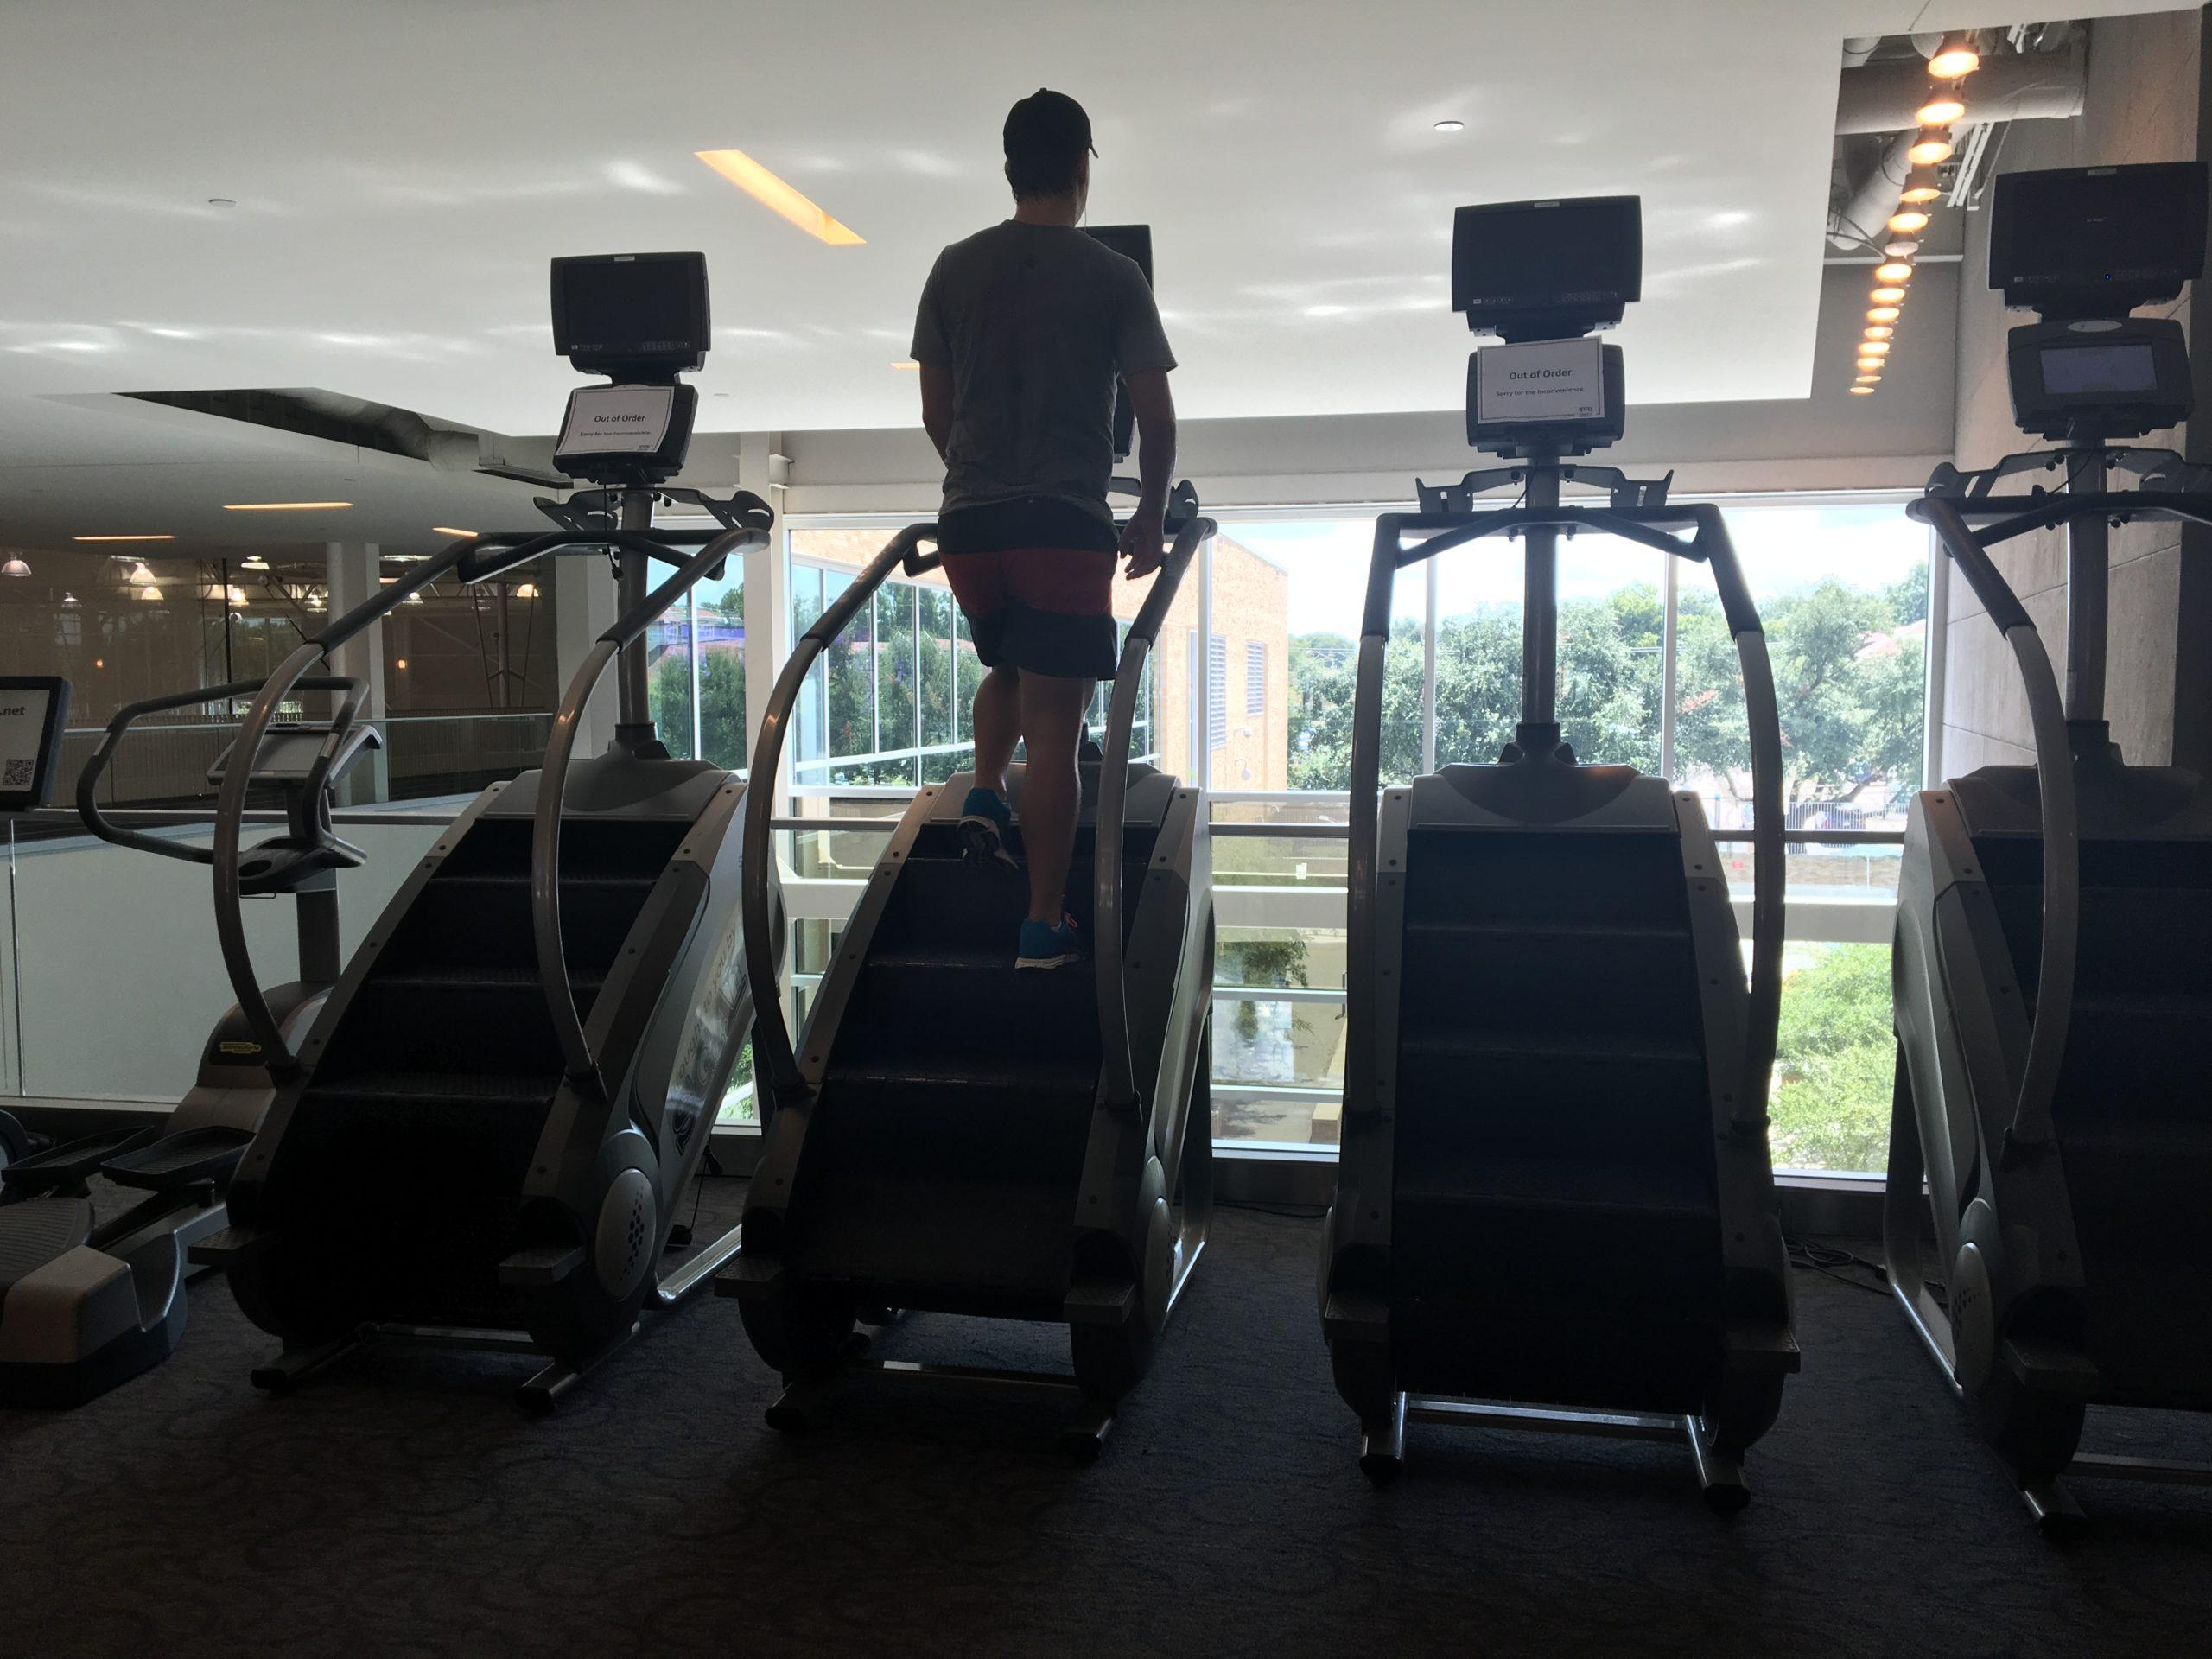 Popular demand of the StairMasters leaves some machines in need of repair.